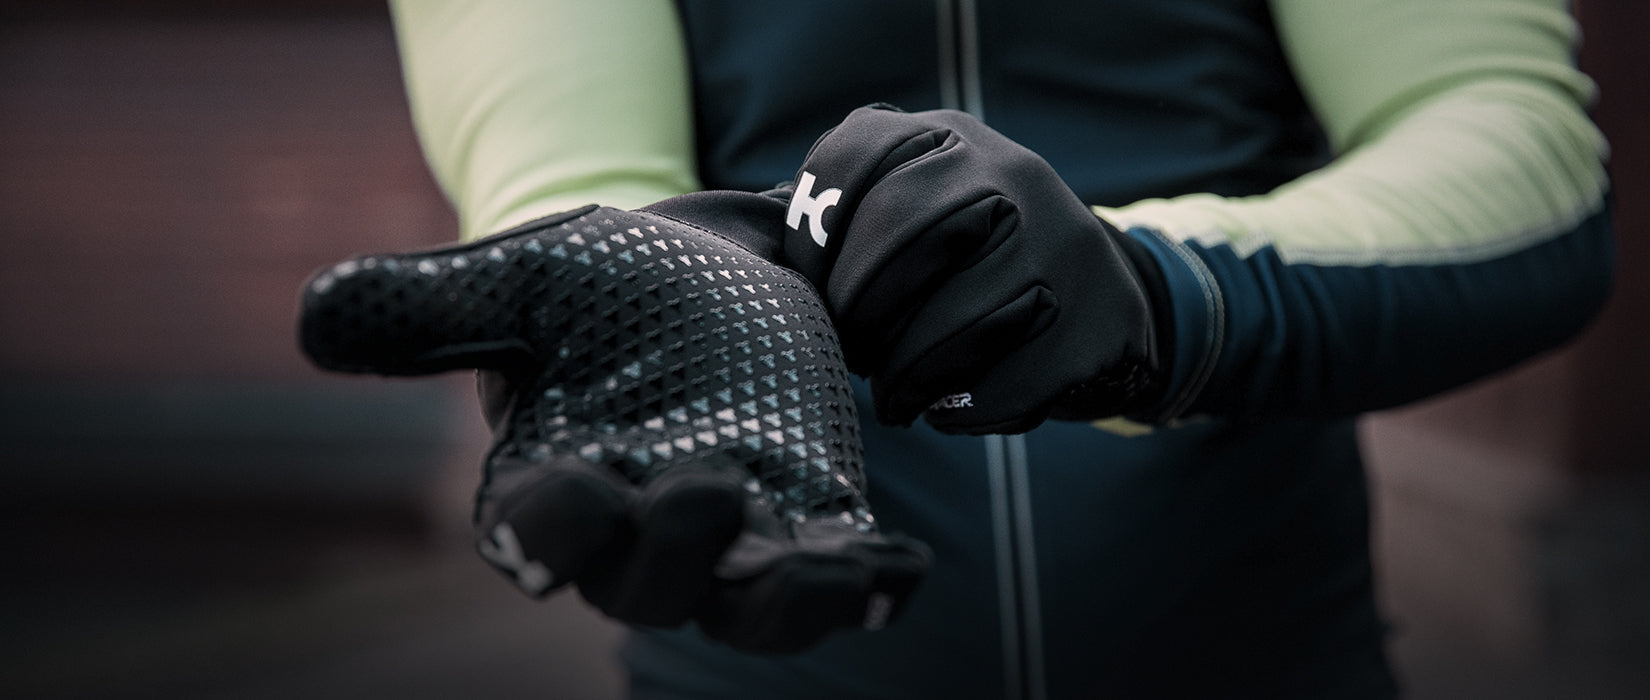 katusha cycling apparel - gloves